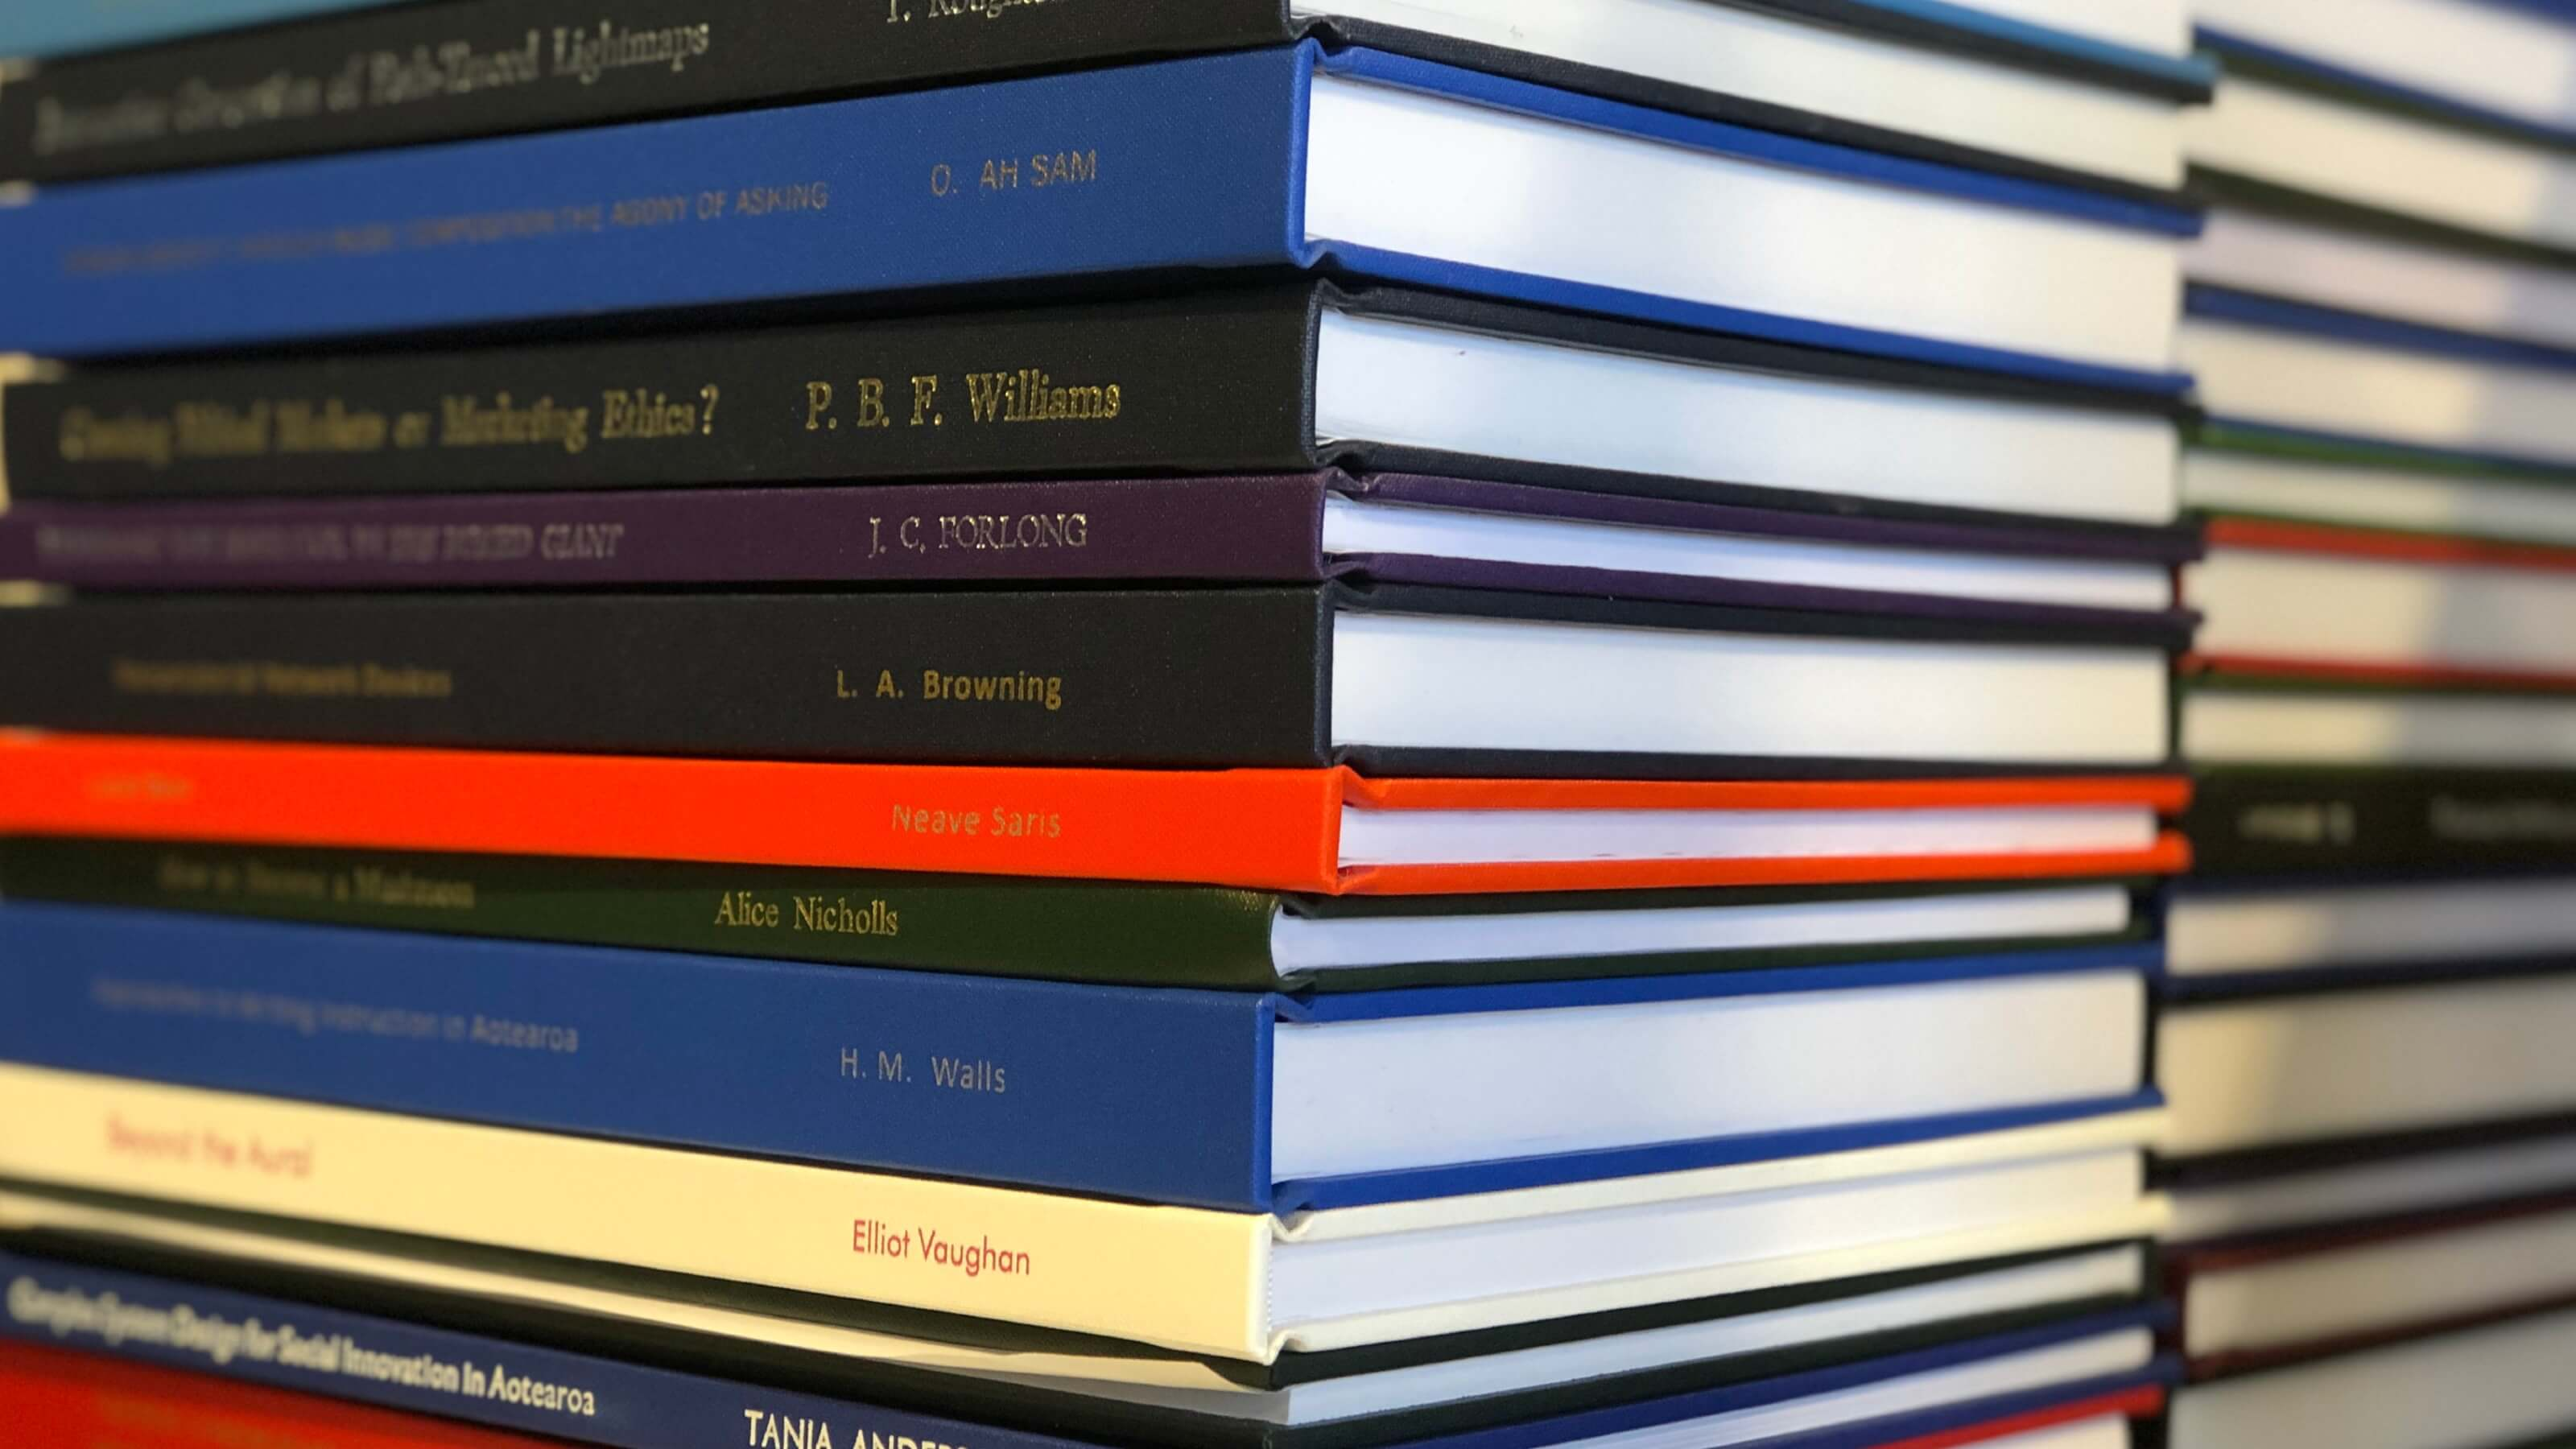 A close up image of a stack of hardcover books.